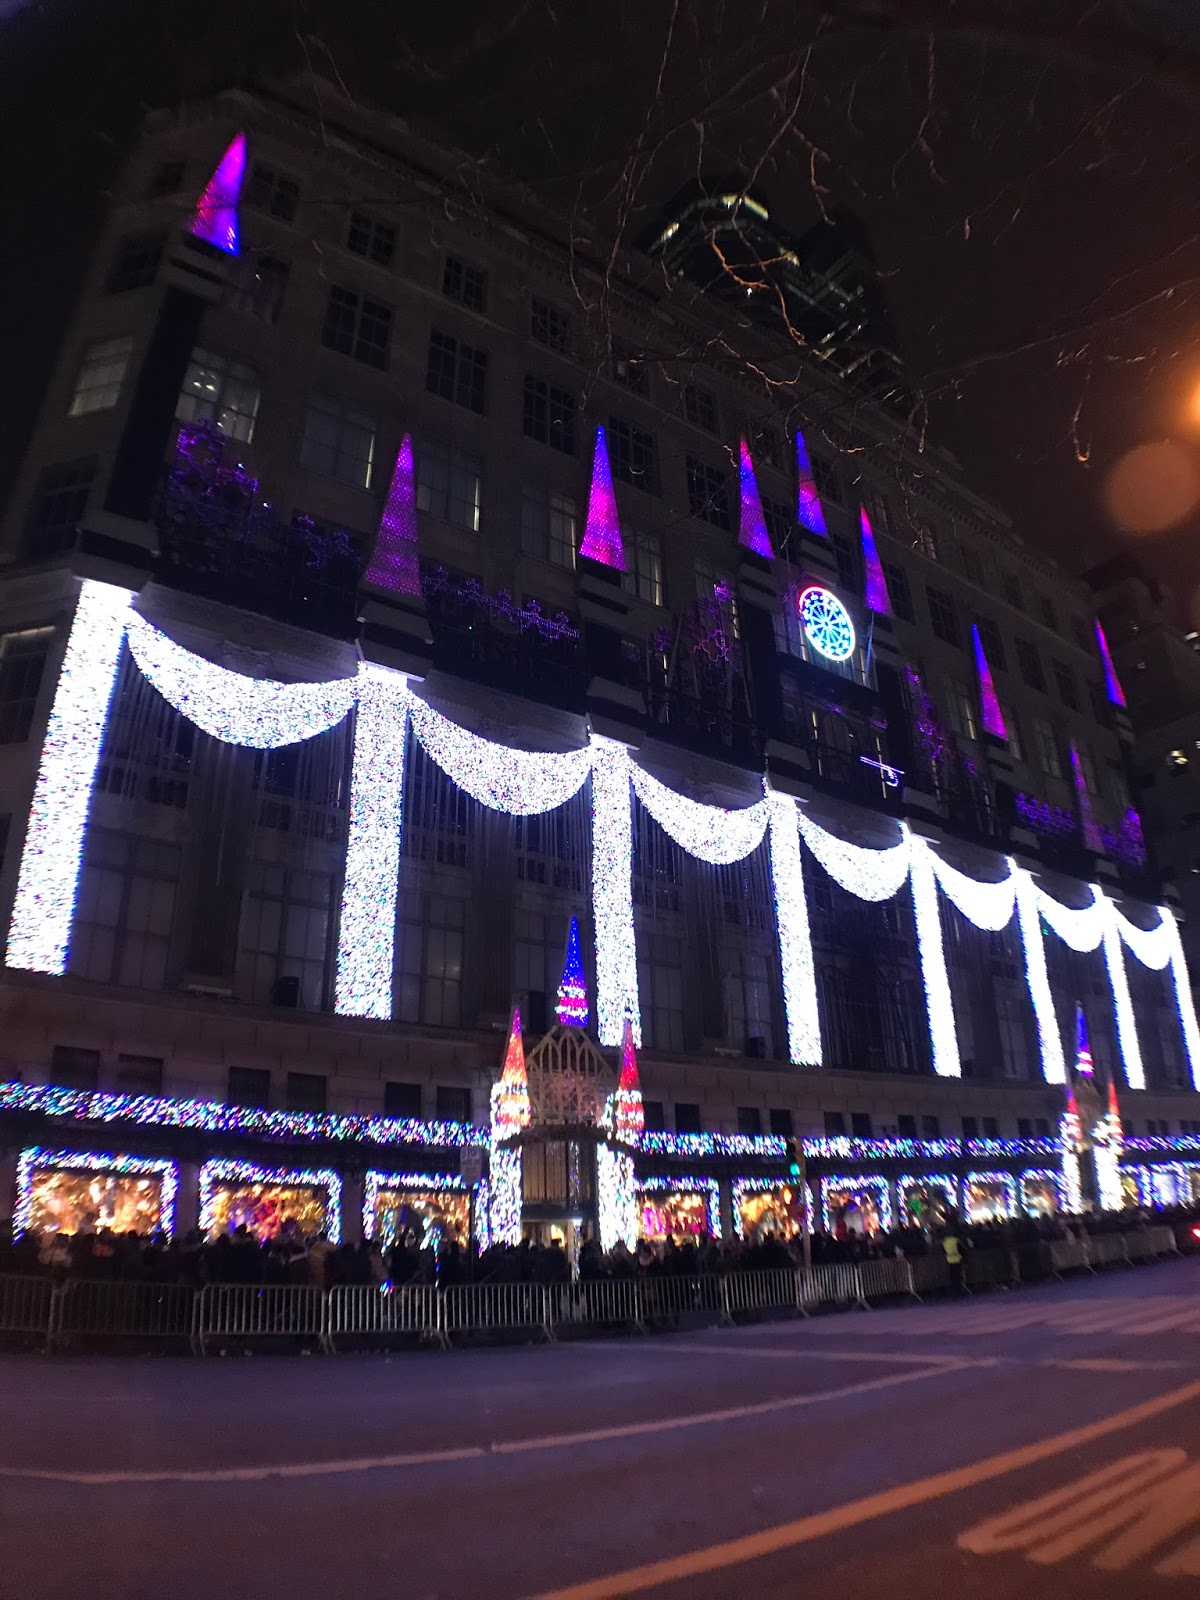 Most Of Them Are Tourists From Different Parts Of The World, Judging From  Their Comments While Admiring The Light Show.